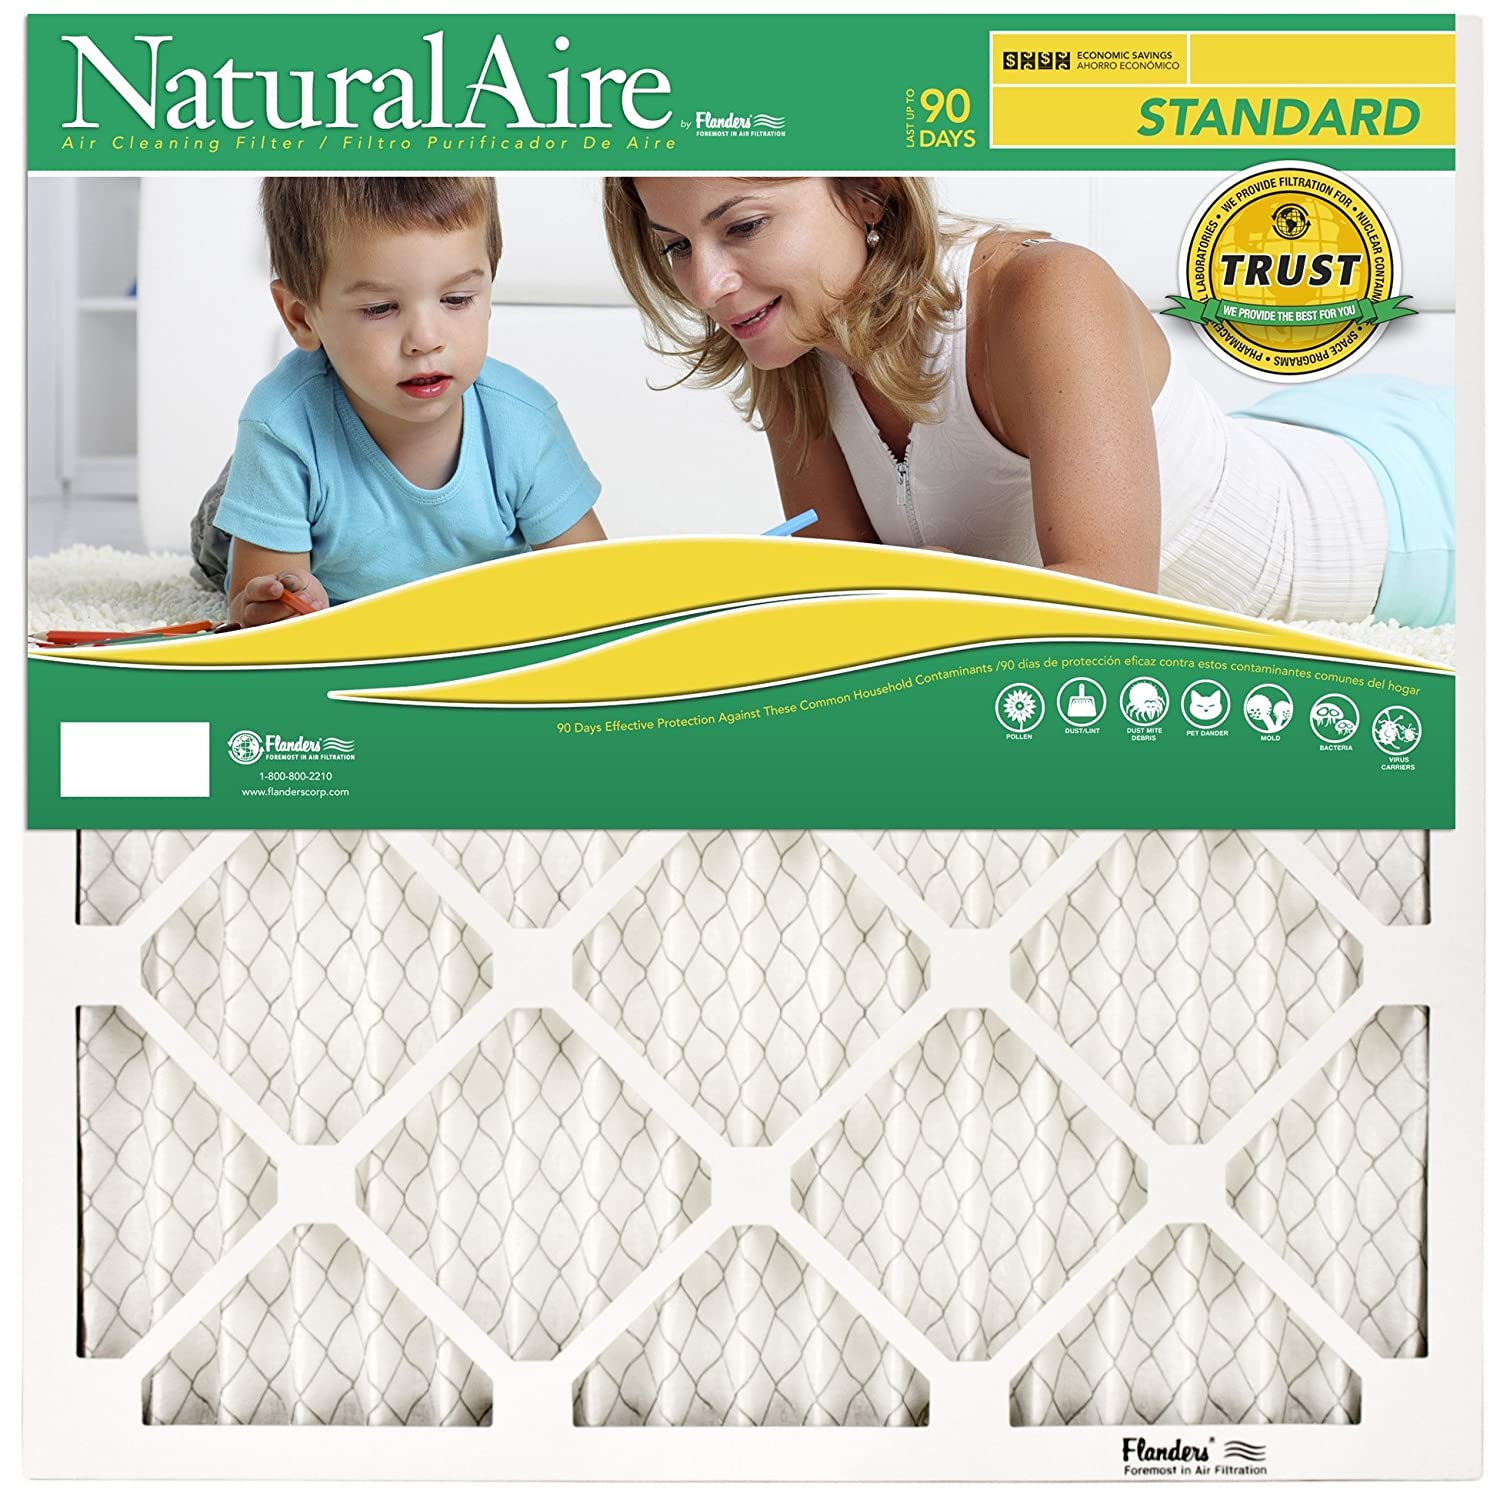 Amazon.com: 21-1/2x24x1, Naturalaire Standard Air Filter Merv 8, 84858.0121524, Pack12: Home & Kitchen